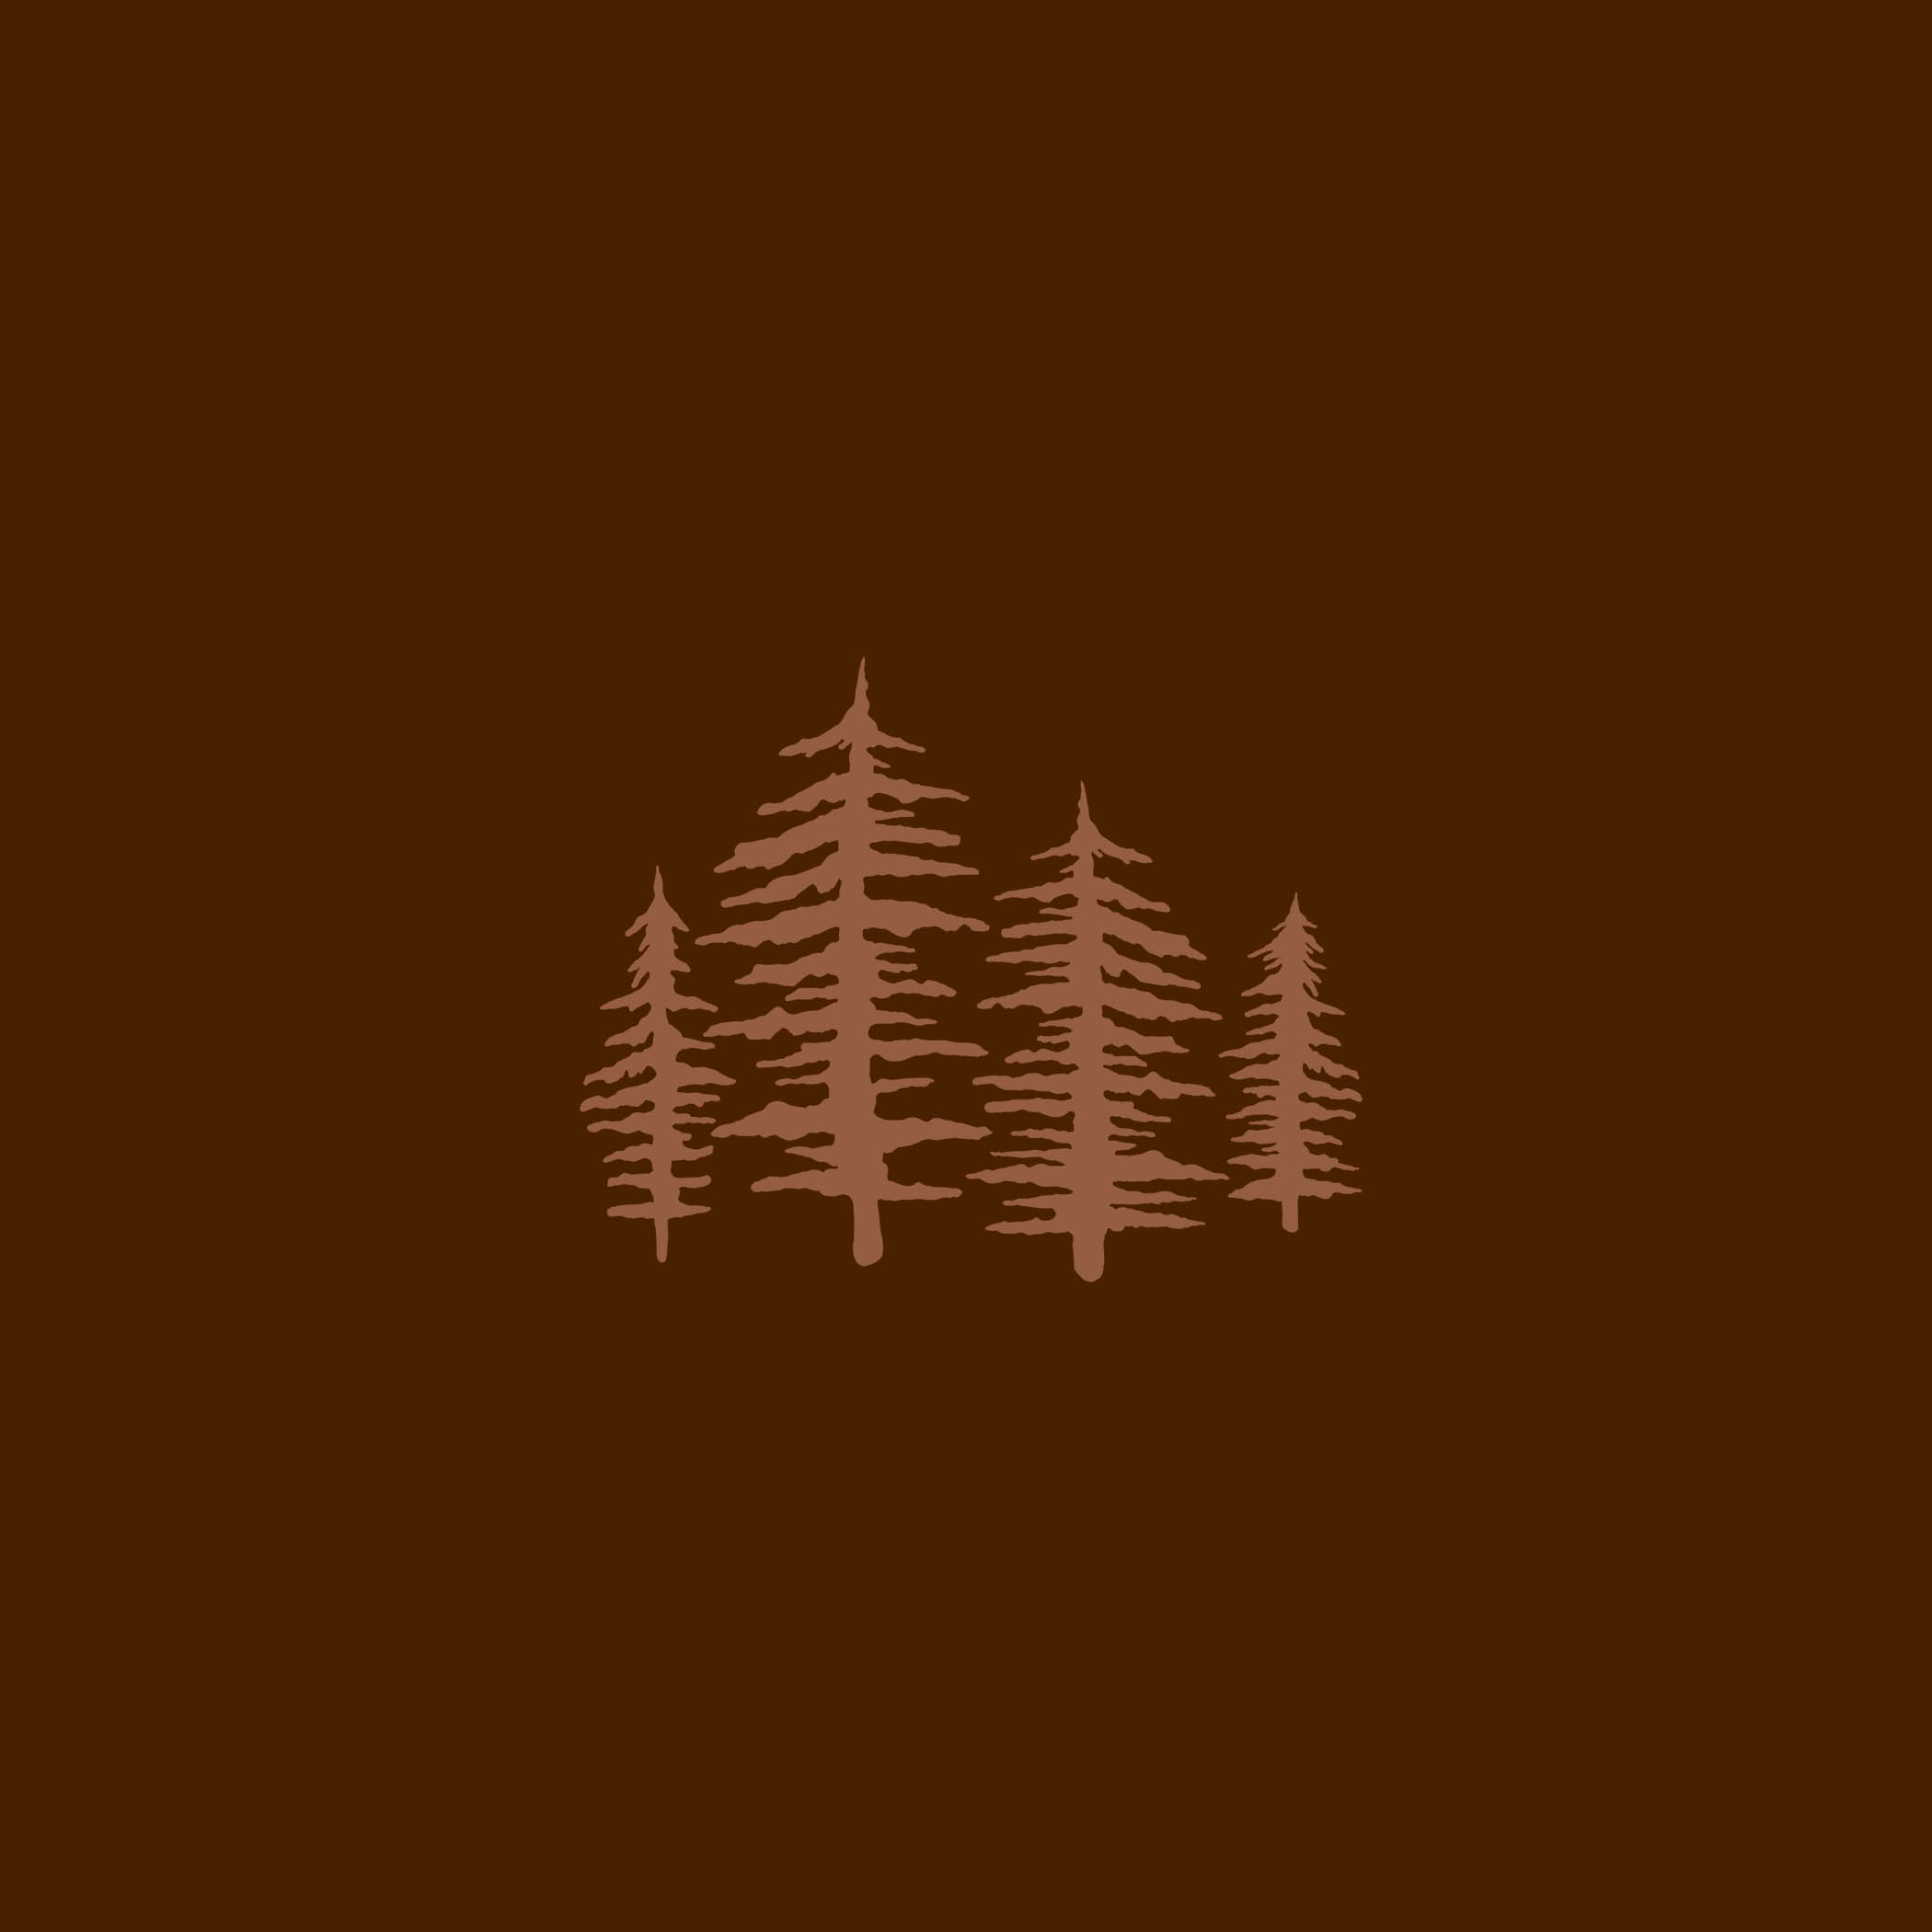 pine trees icon for wedding photographer